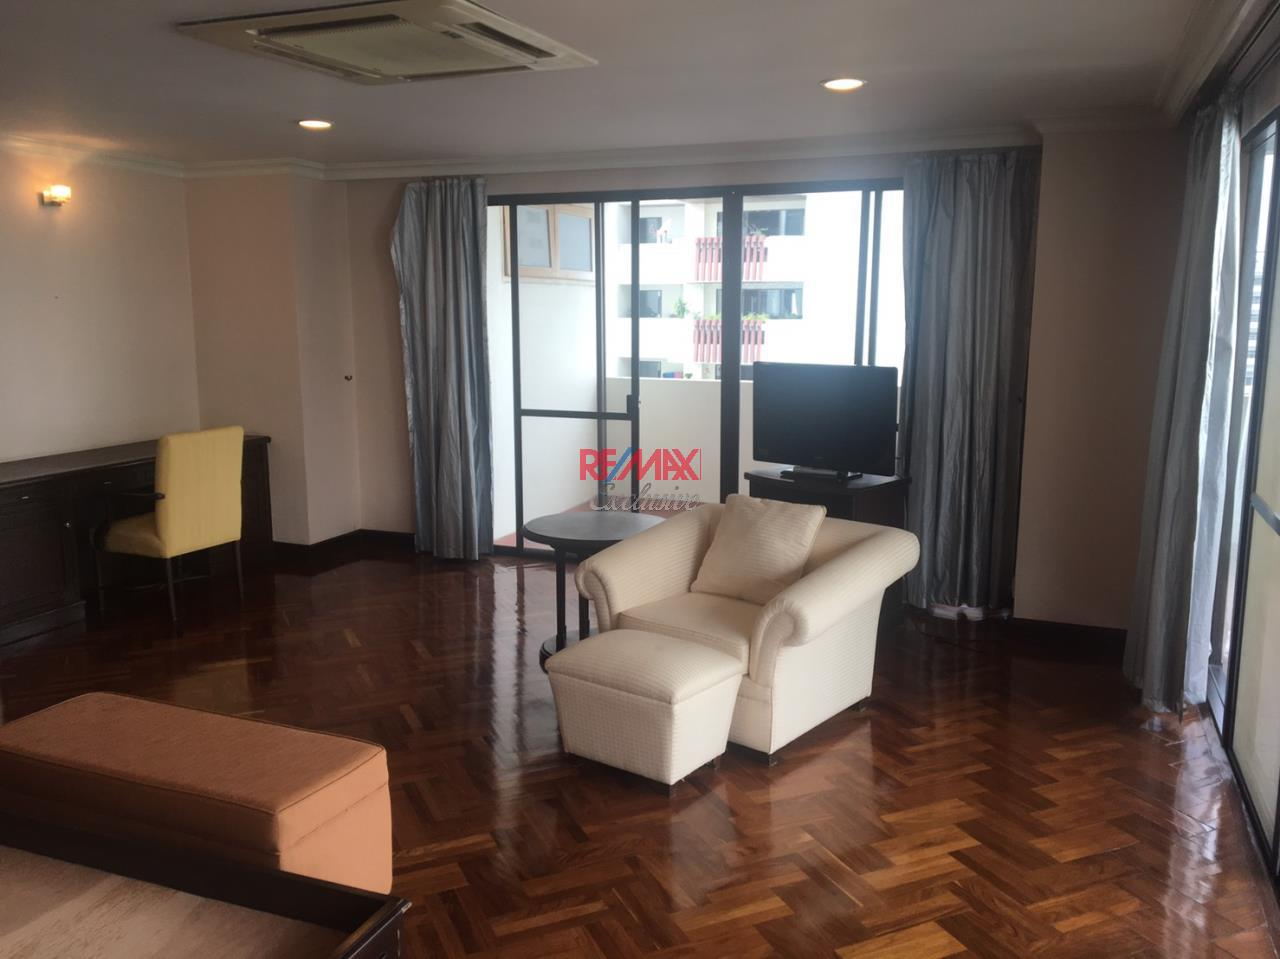 RE/MAX Exclusive Agency's Hawaii Tower, 4 Bedroom, 420 Sqm., Fully-Furnished, Special Price for RENT !!! 5